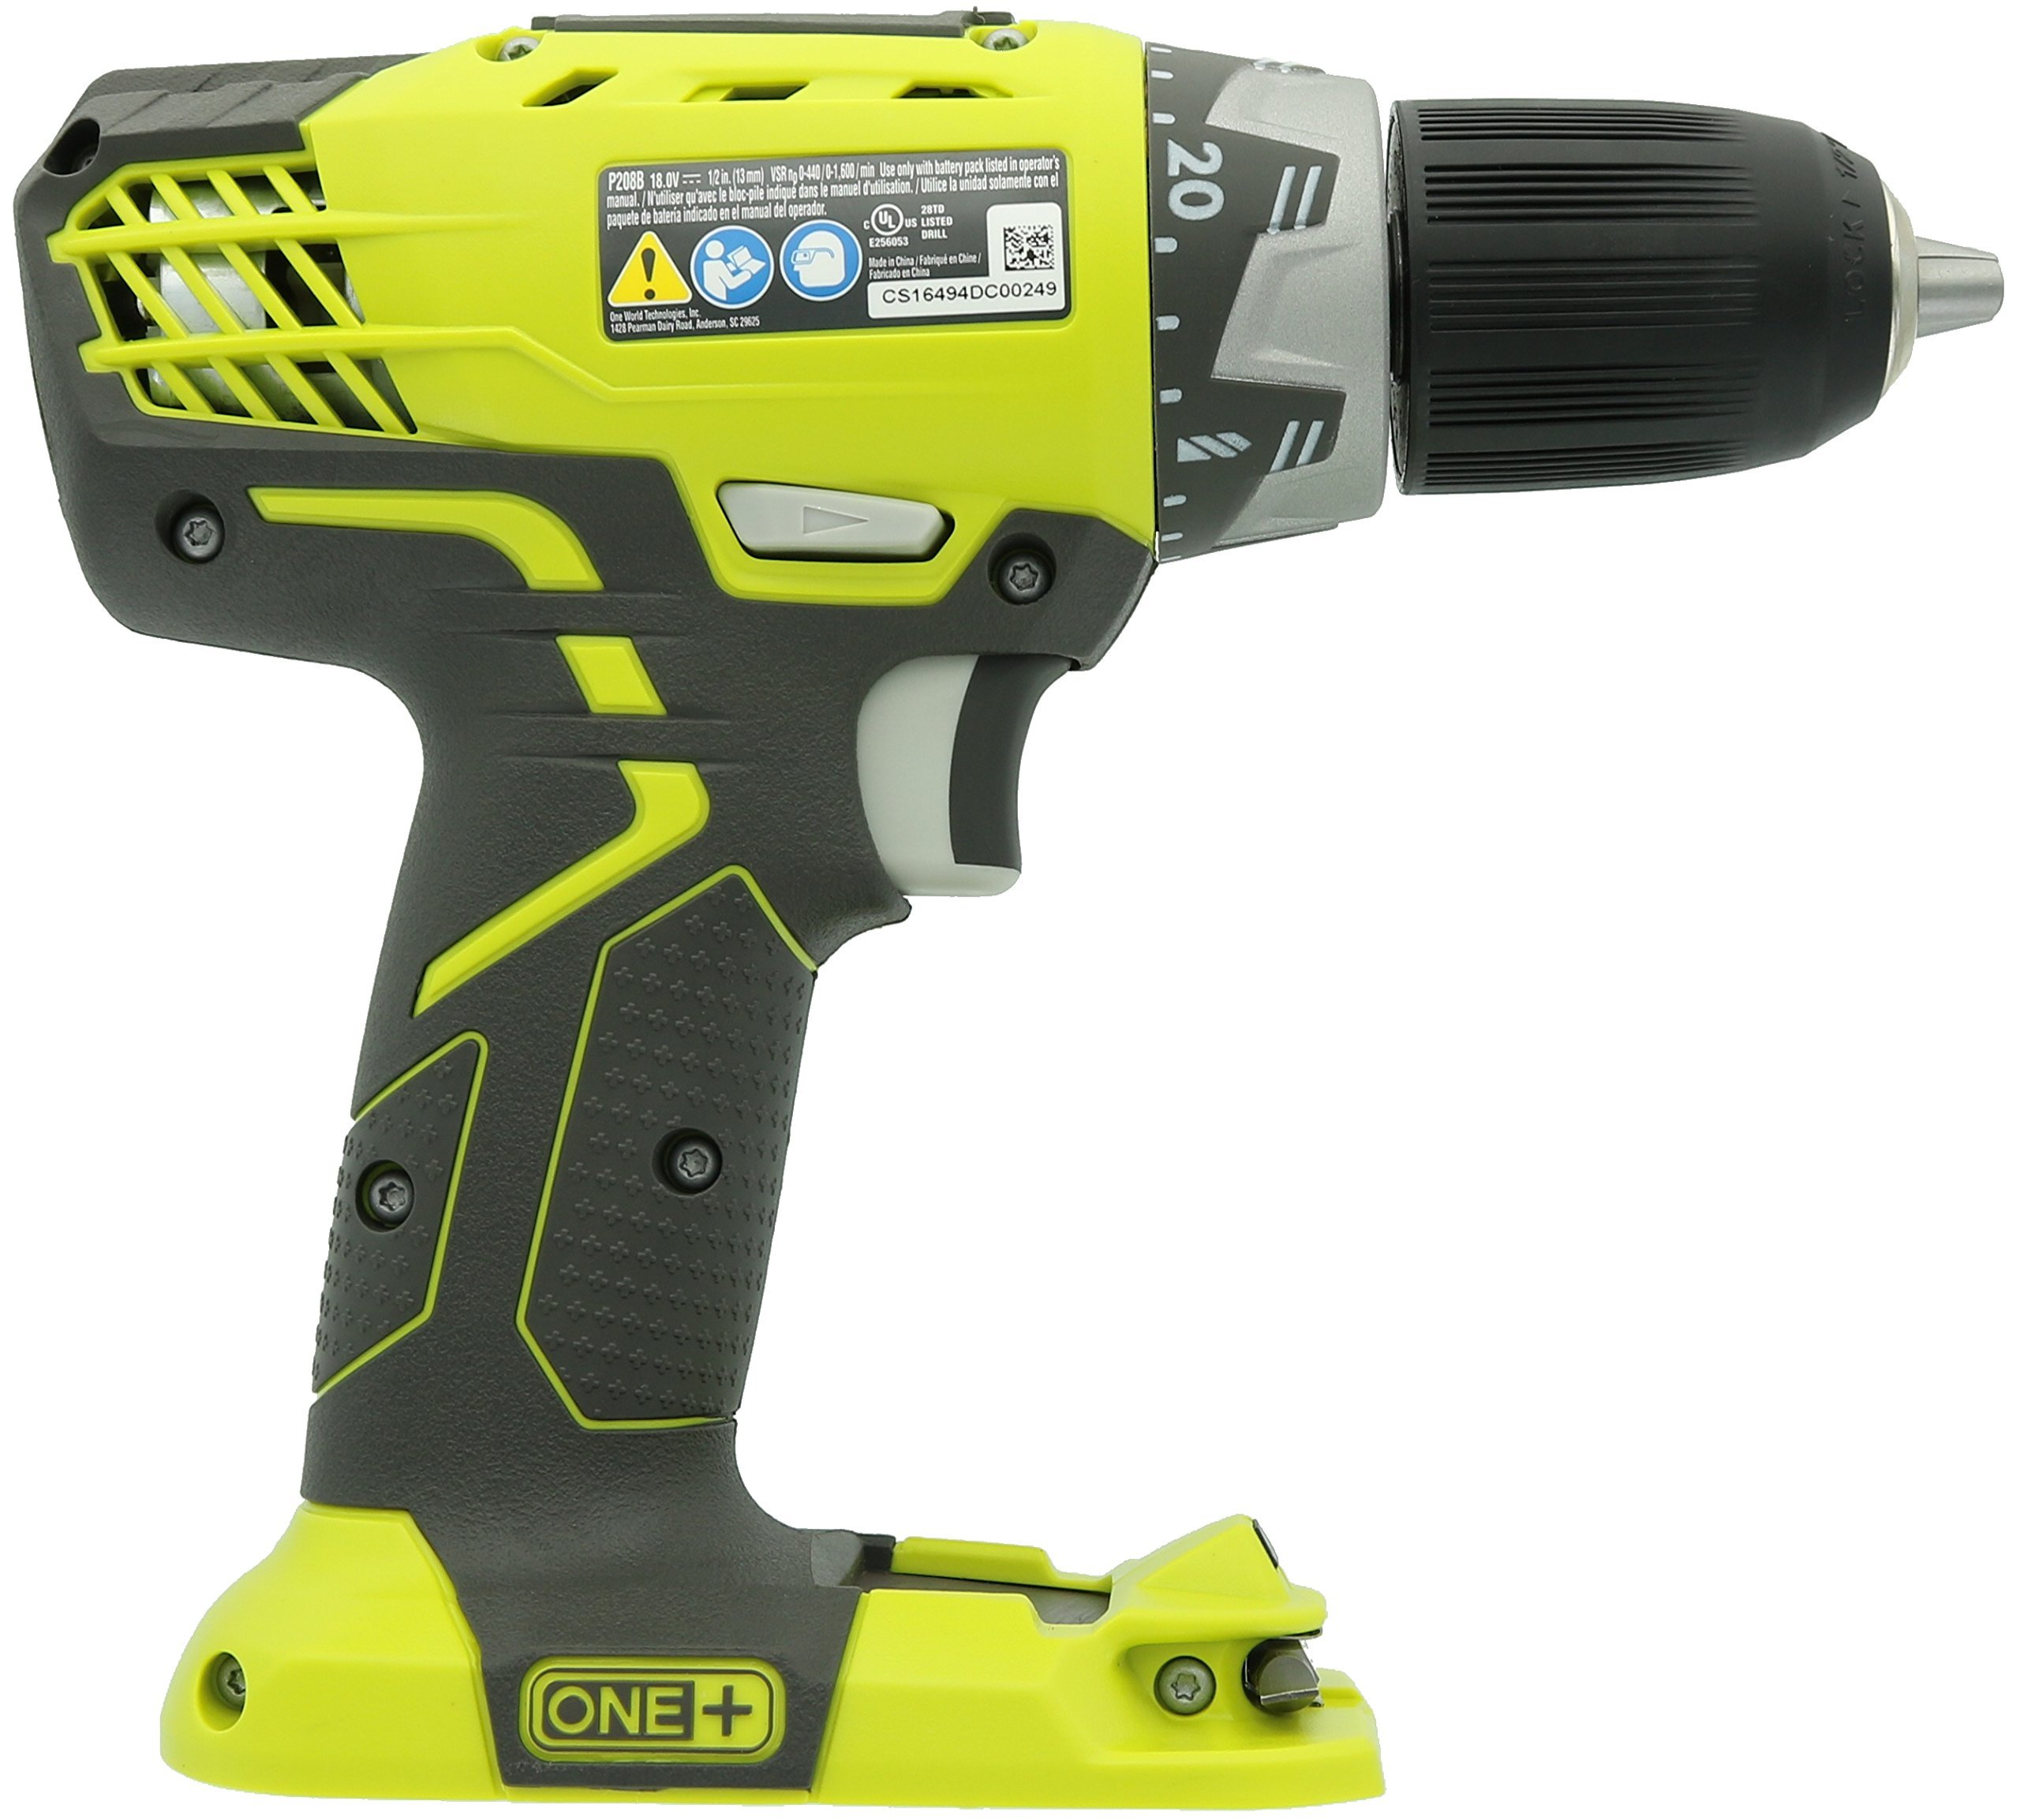 Ryobi P208 One+ 18V Lithium Ion Drill / Driver with 1/2 Inch Keyless Chuck (Batteries Not Included, Power Tool Only) (Certified Refurbished) by Ryobi (Image #2)